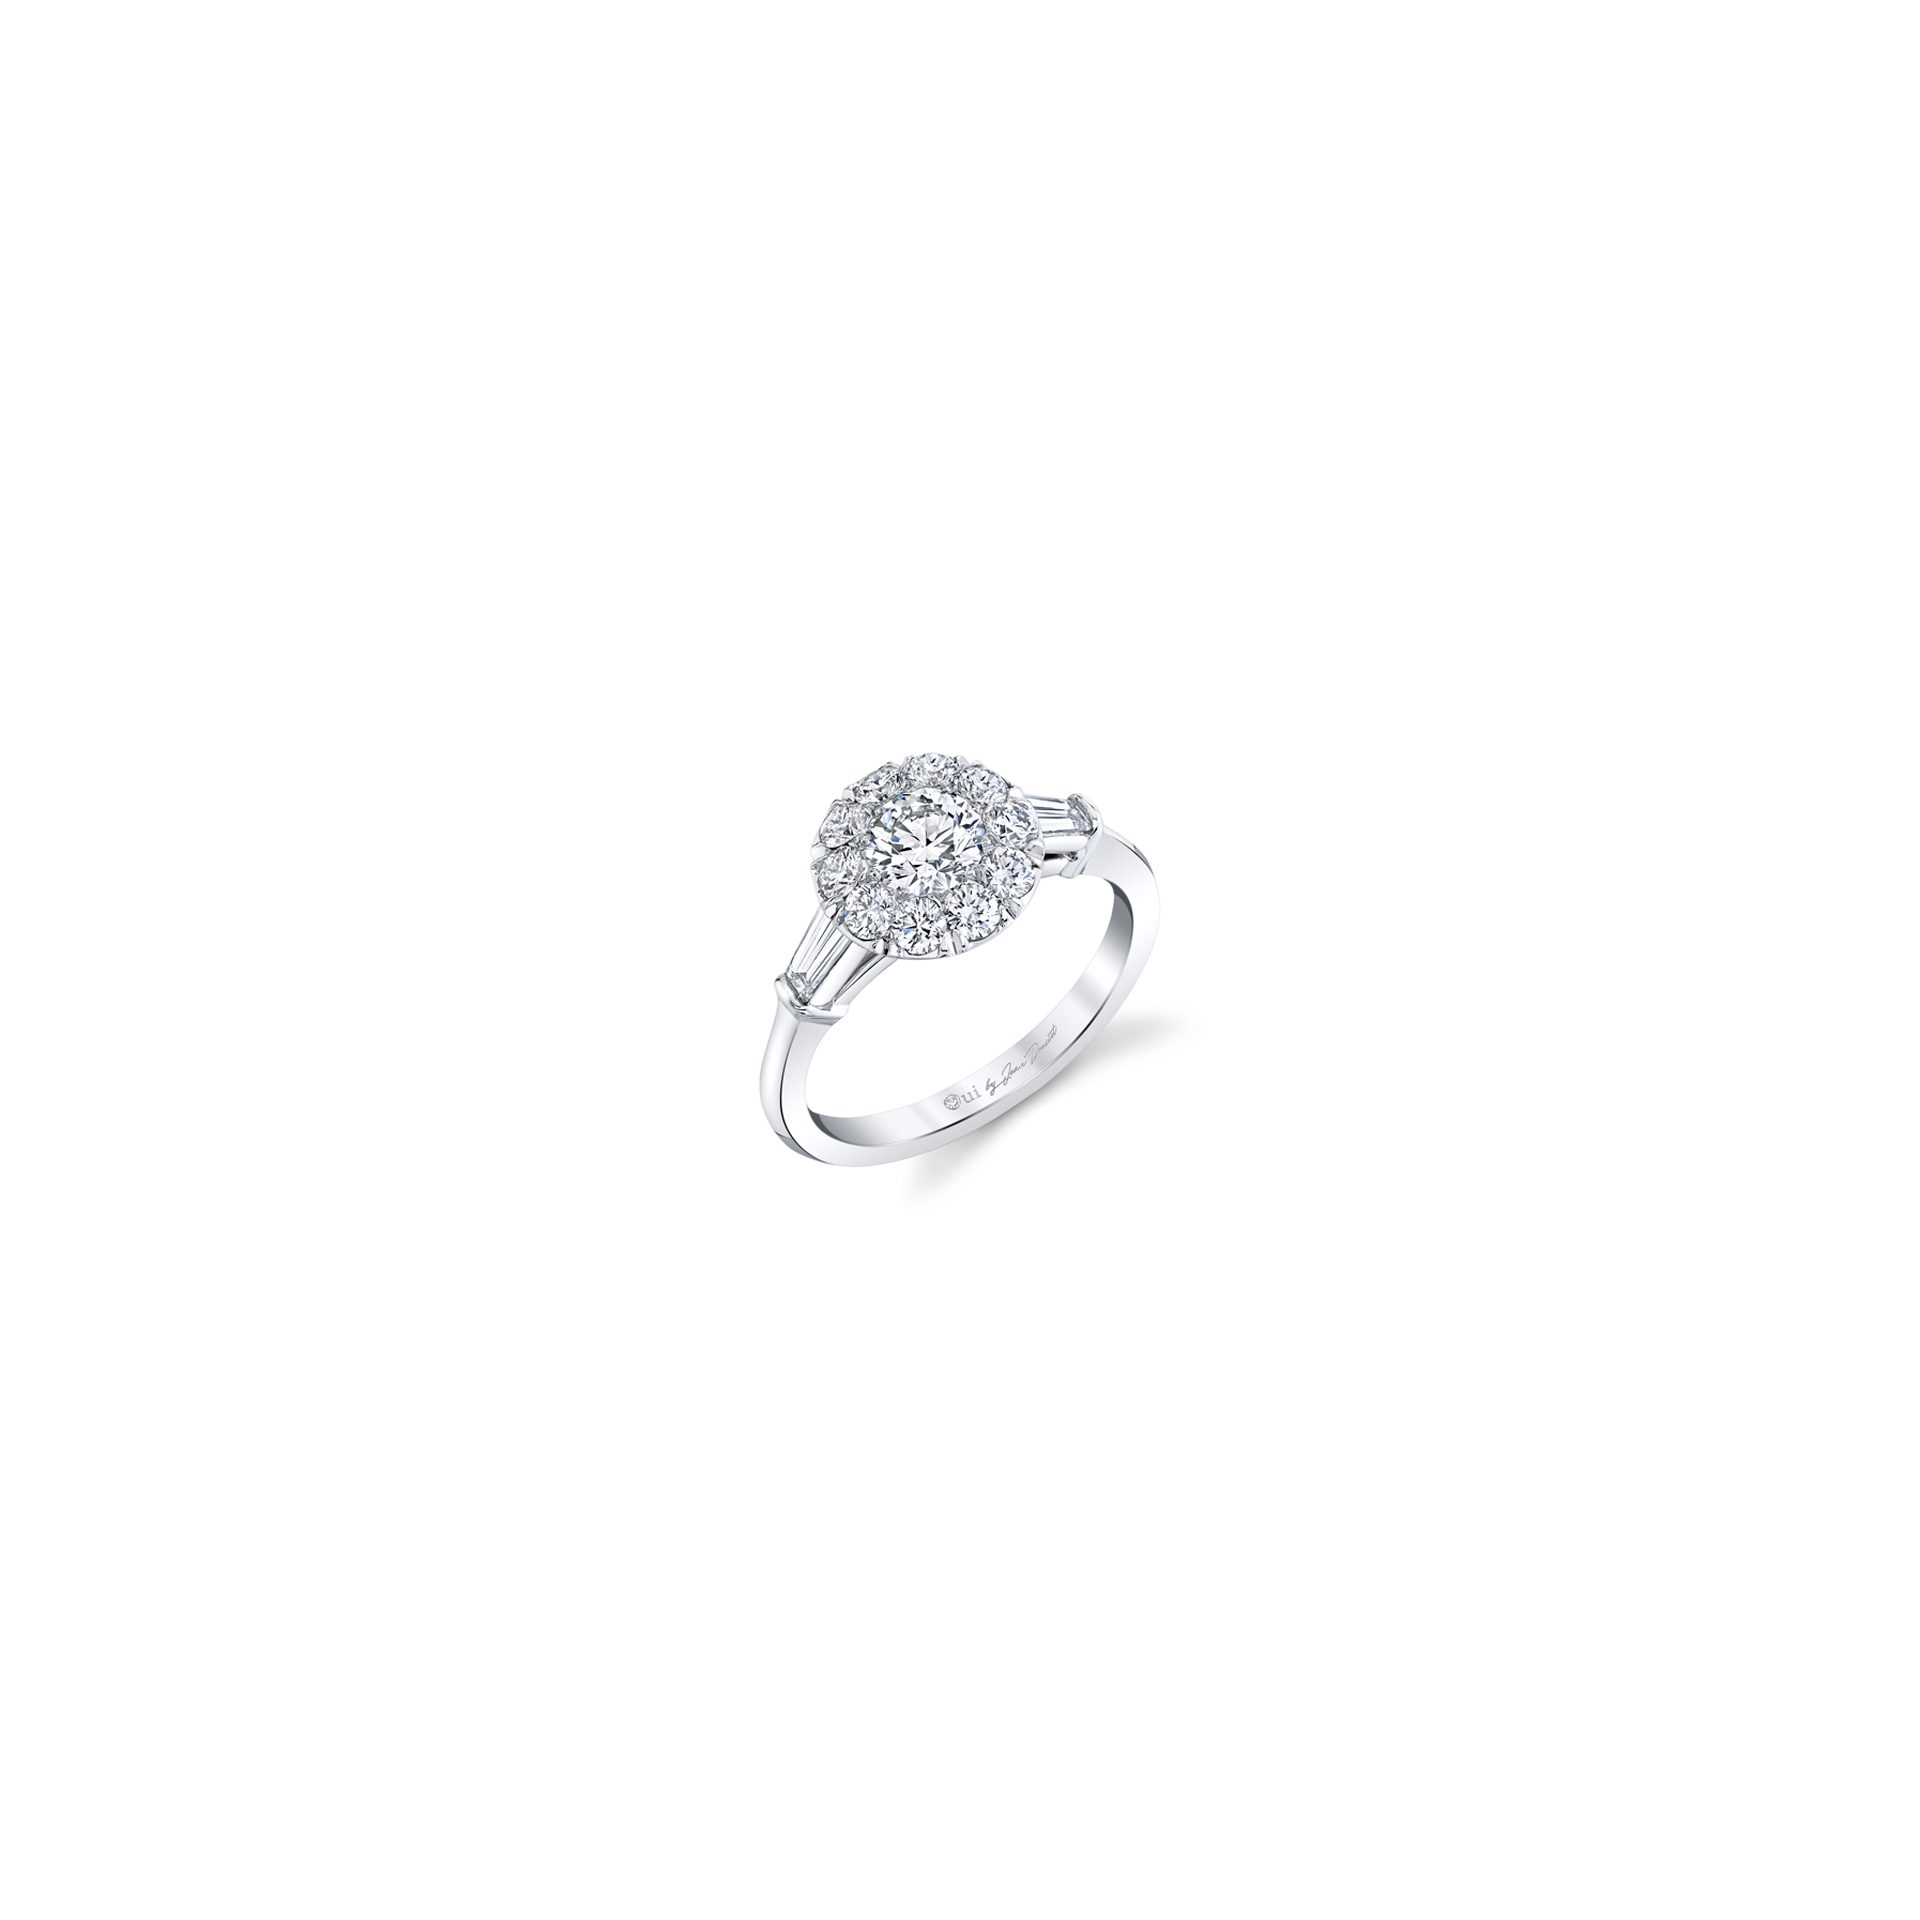 Madeline Round Brilliant Seamless Solitaire™ Three Stone Engagement Ring with tapered baguette diamond side stones in 18k White Gold Front View by Oui by Jean Dousset